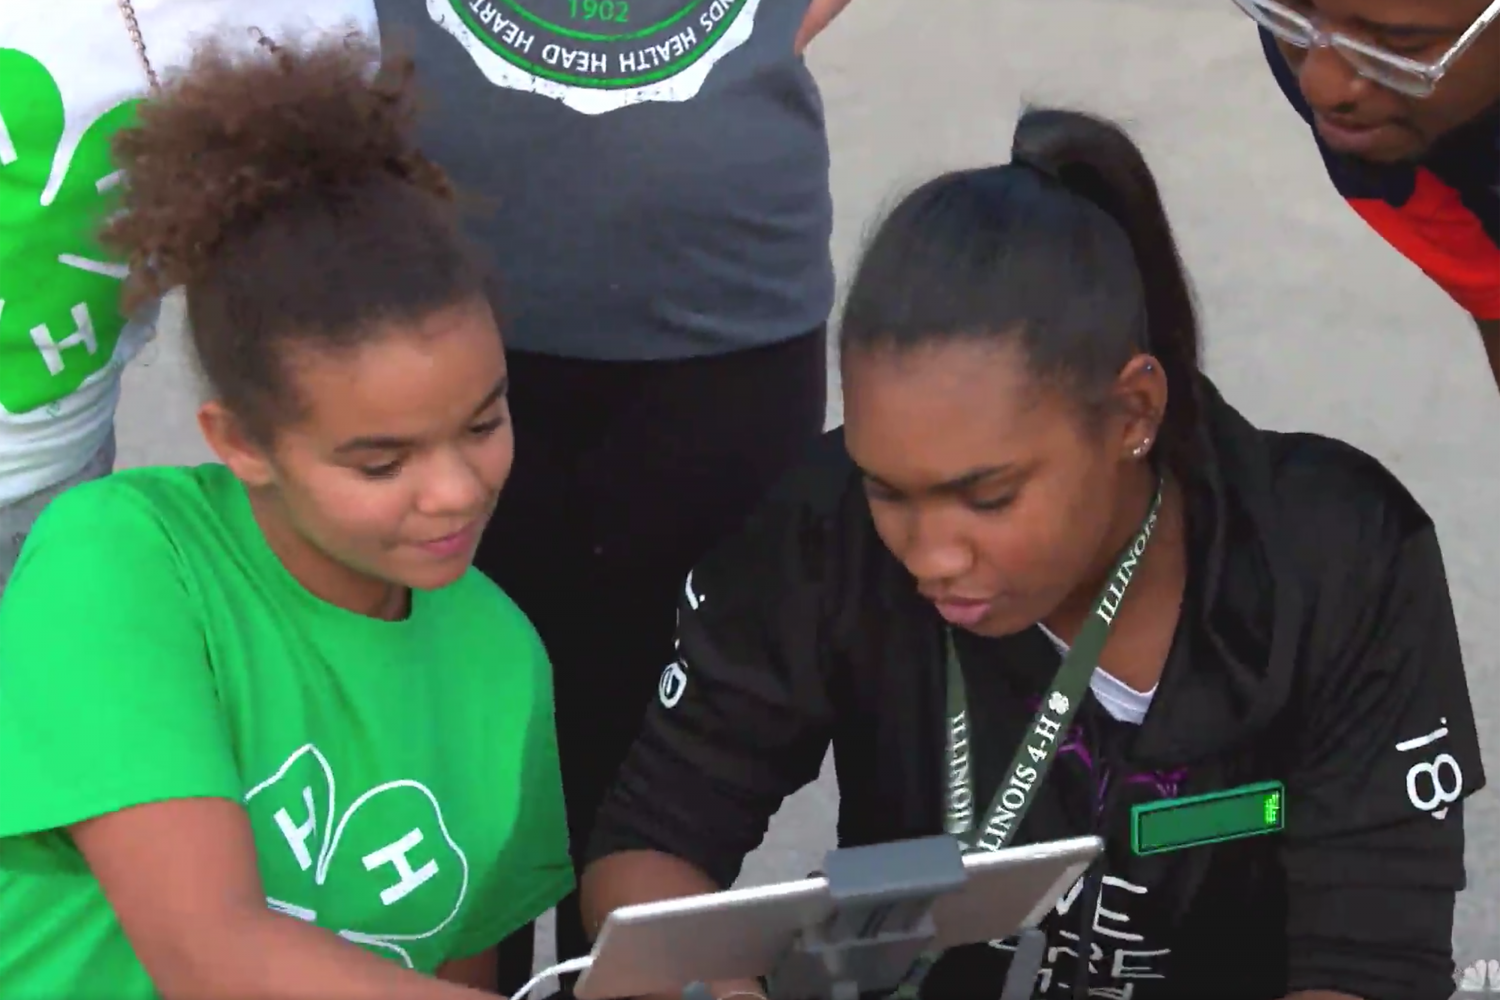 Illinois 4-H member mentors younger student